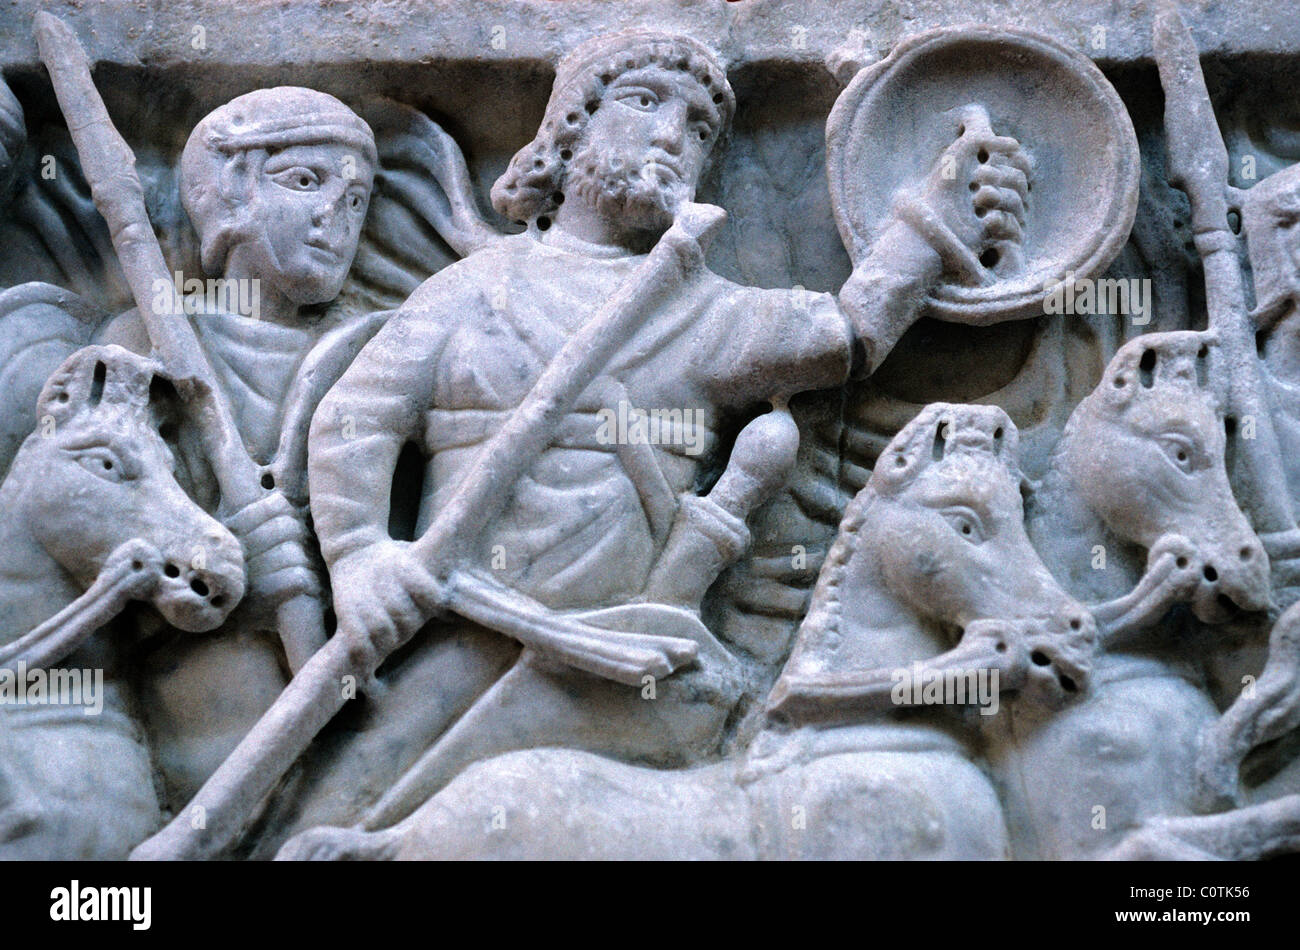 Bas Relief or Stone Carving of Roman Soldiers, Horsemen or Cavalry in Battle Scene, Arles Archaeological Museum, - Stock Image